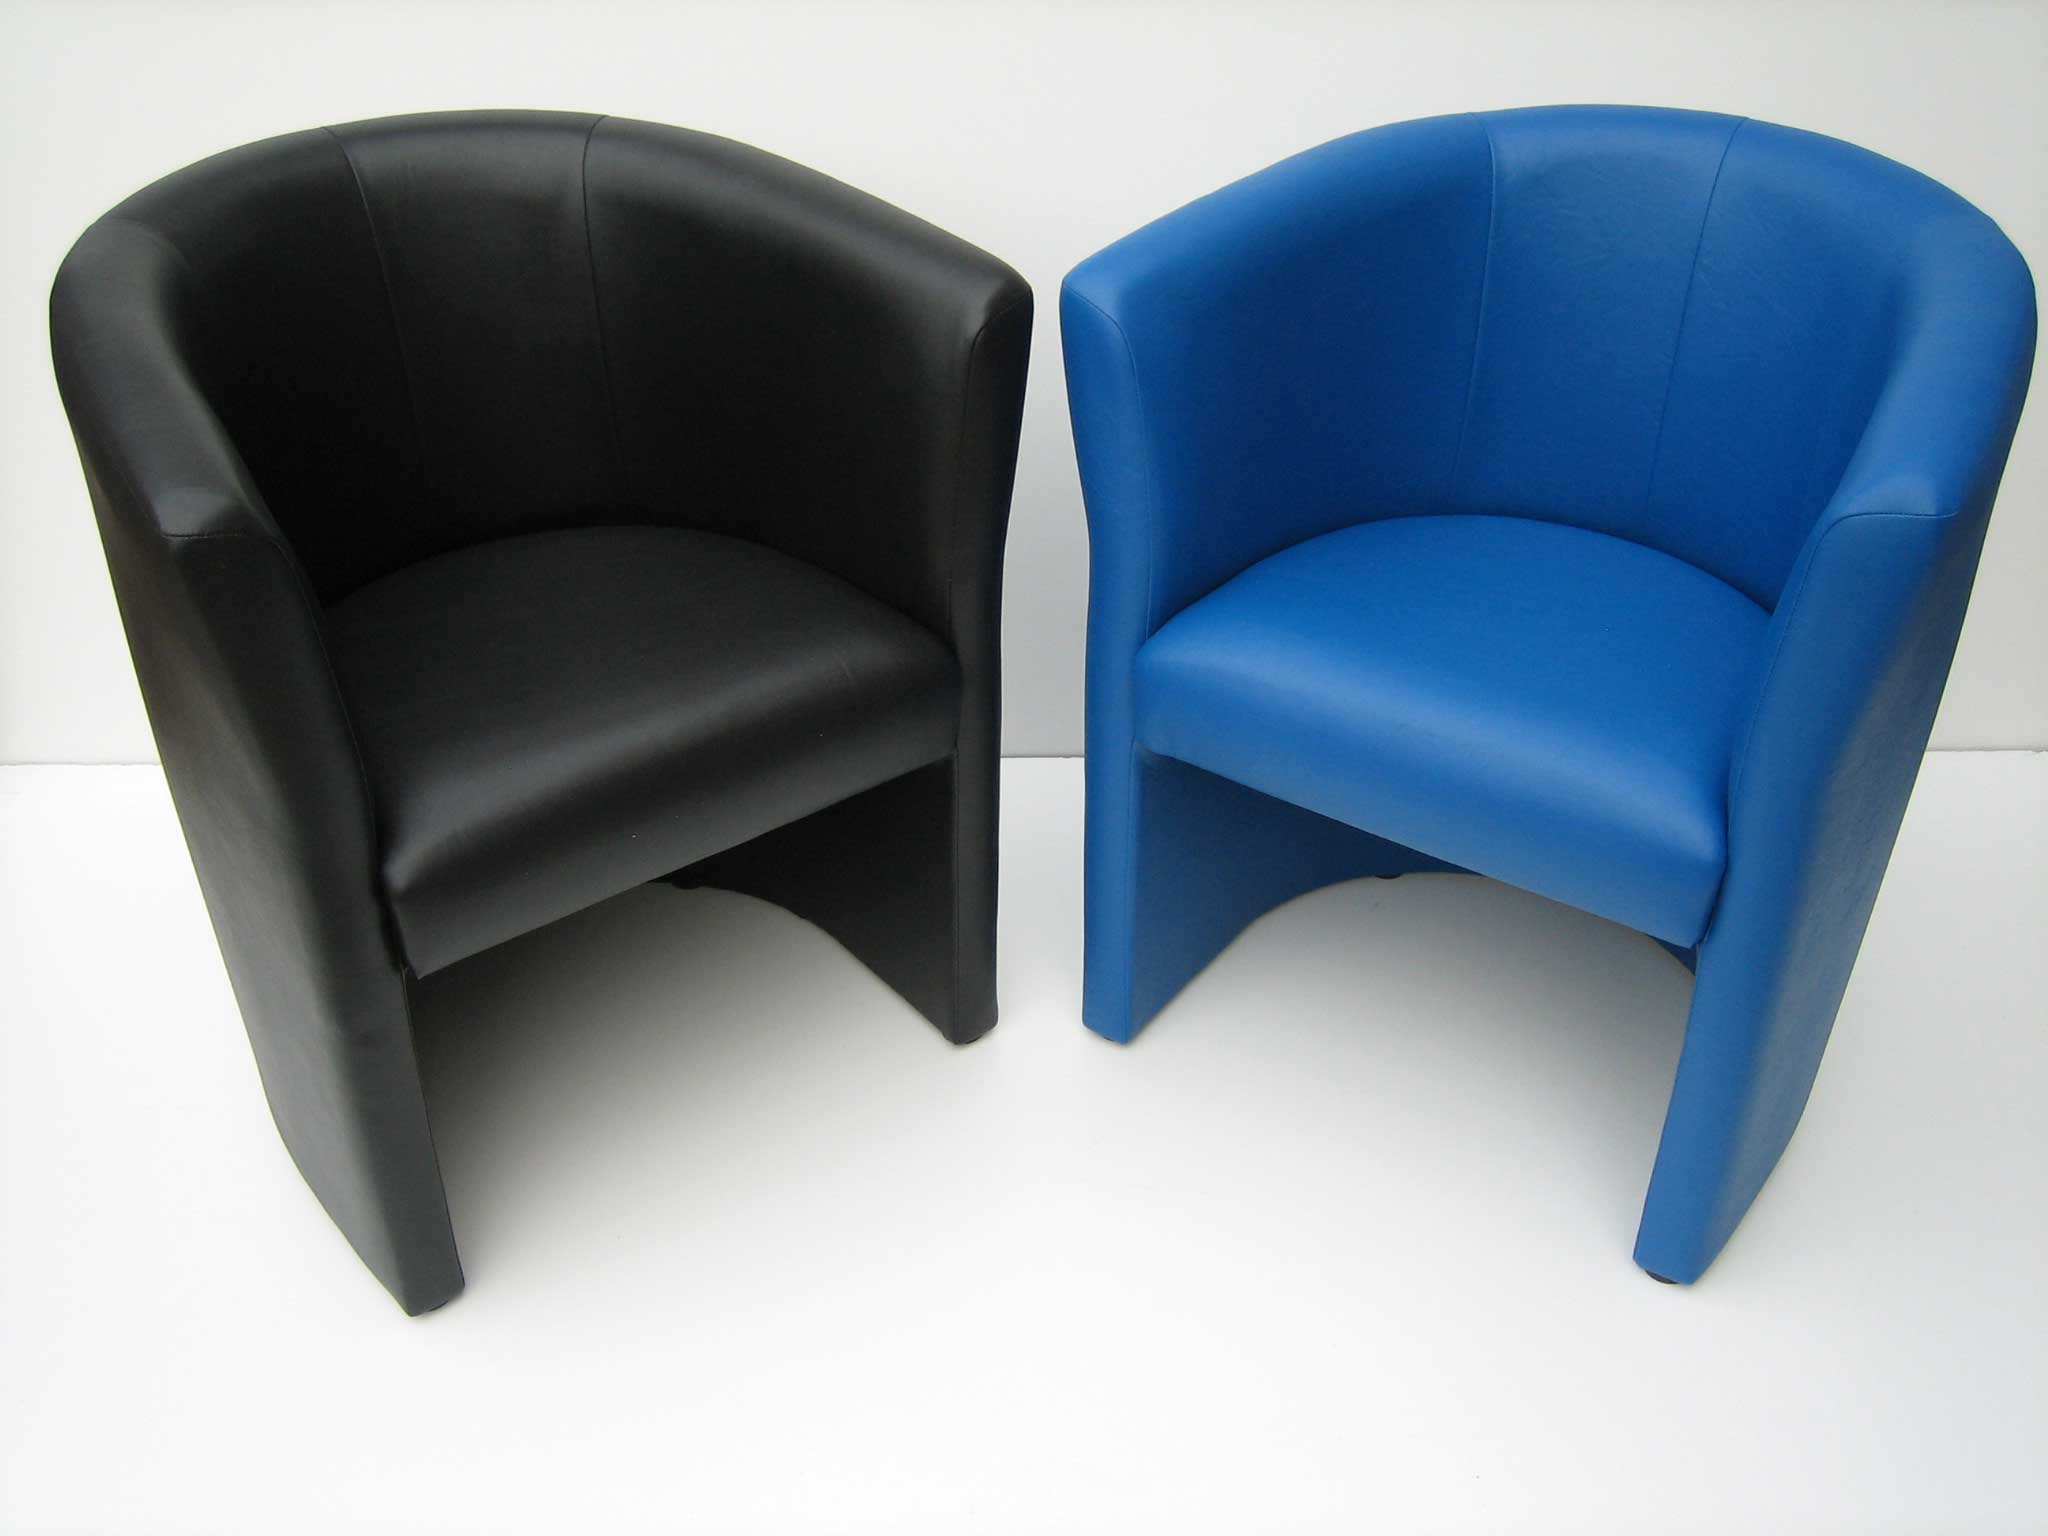 Stylish black and blue home office tub sofas